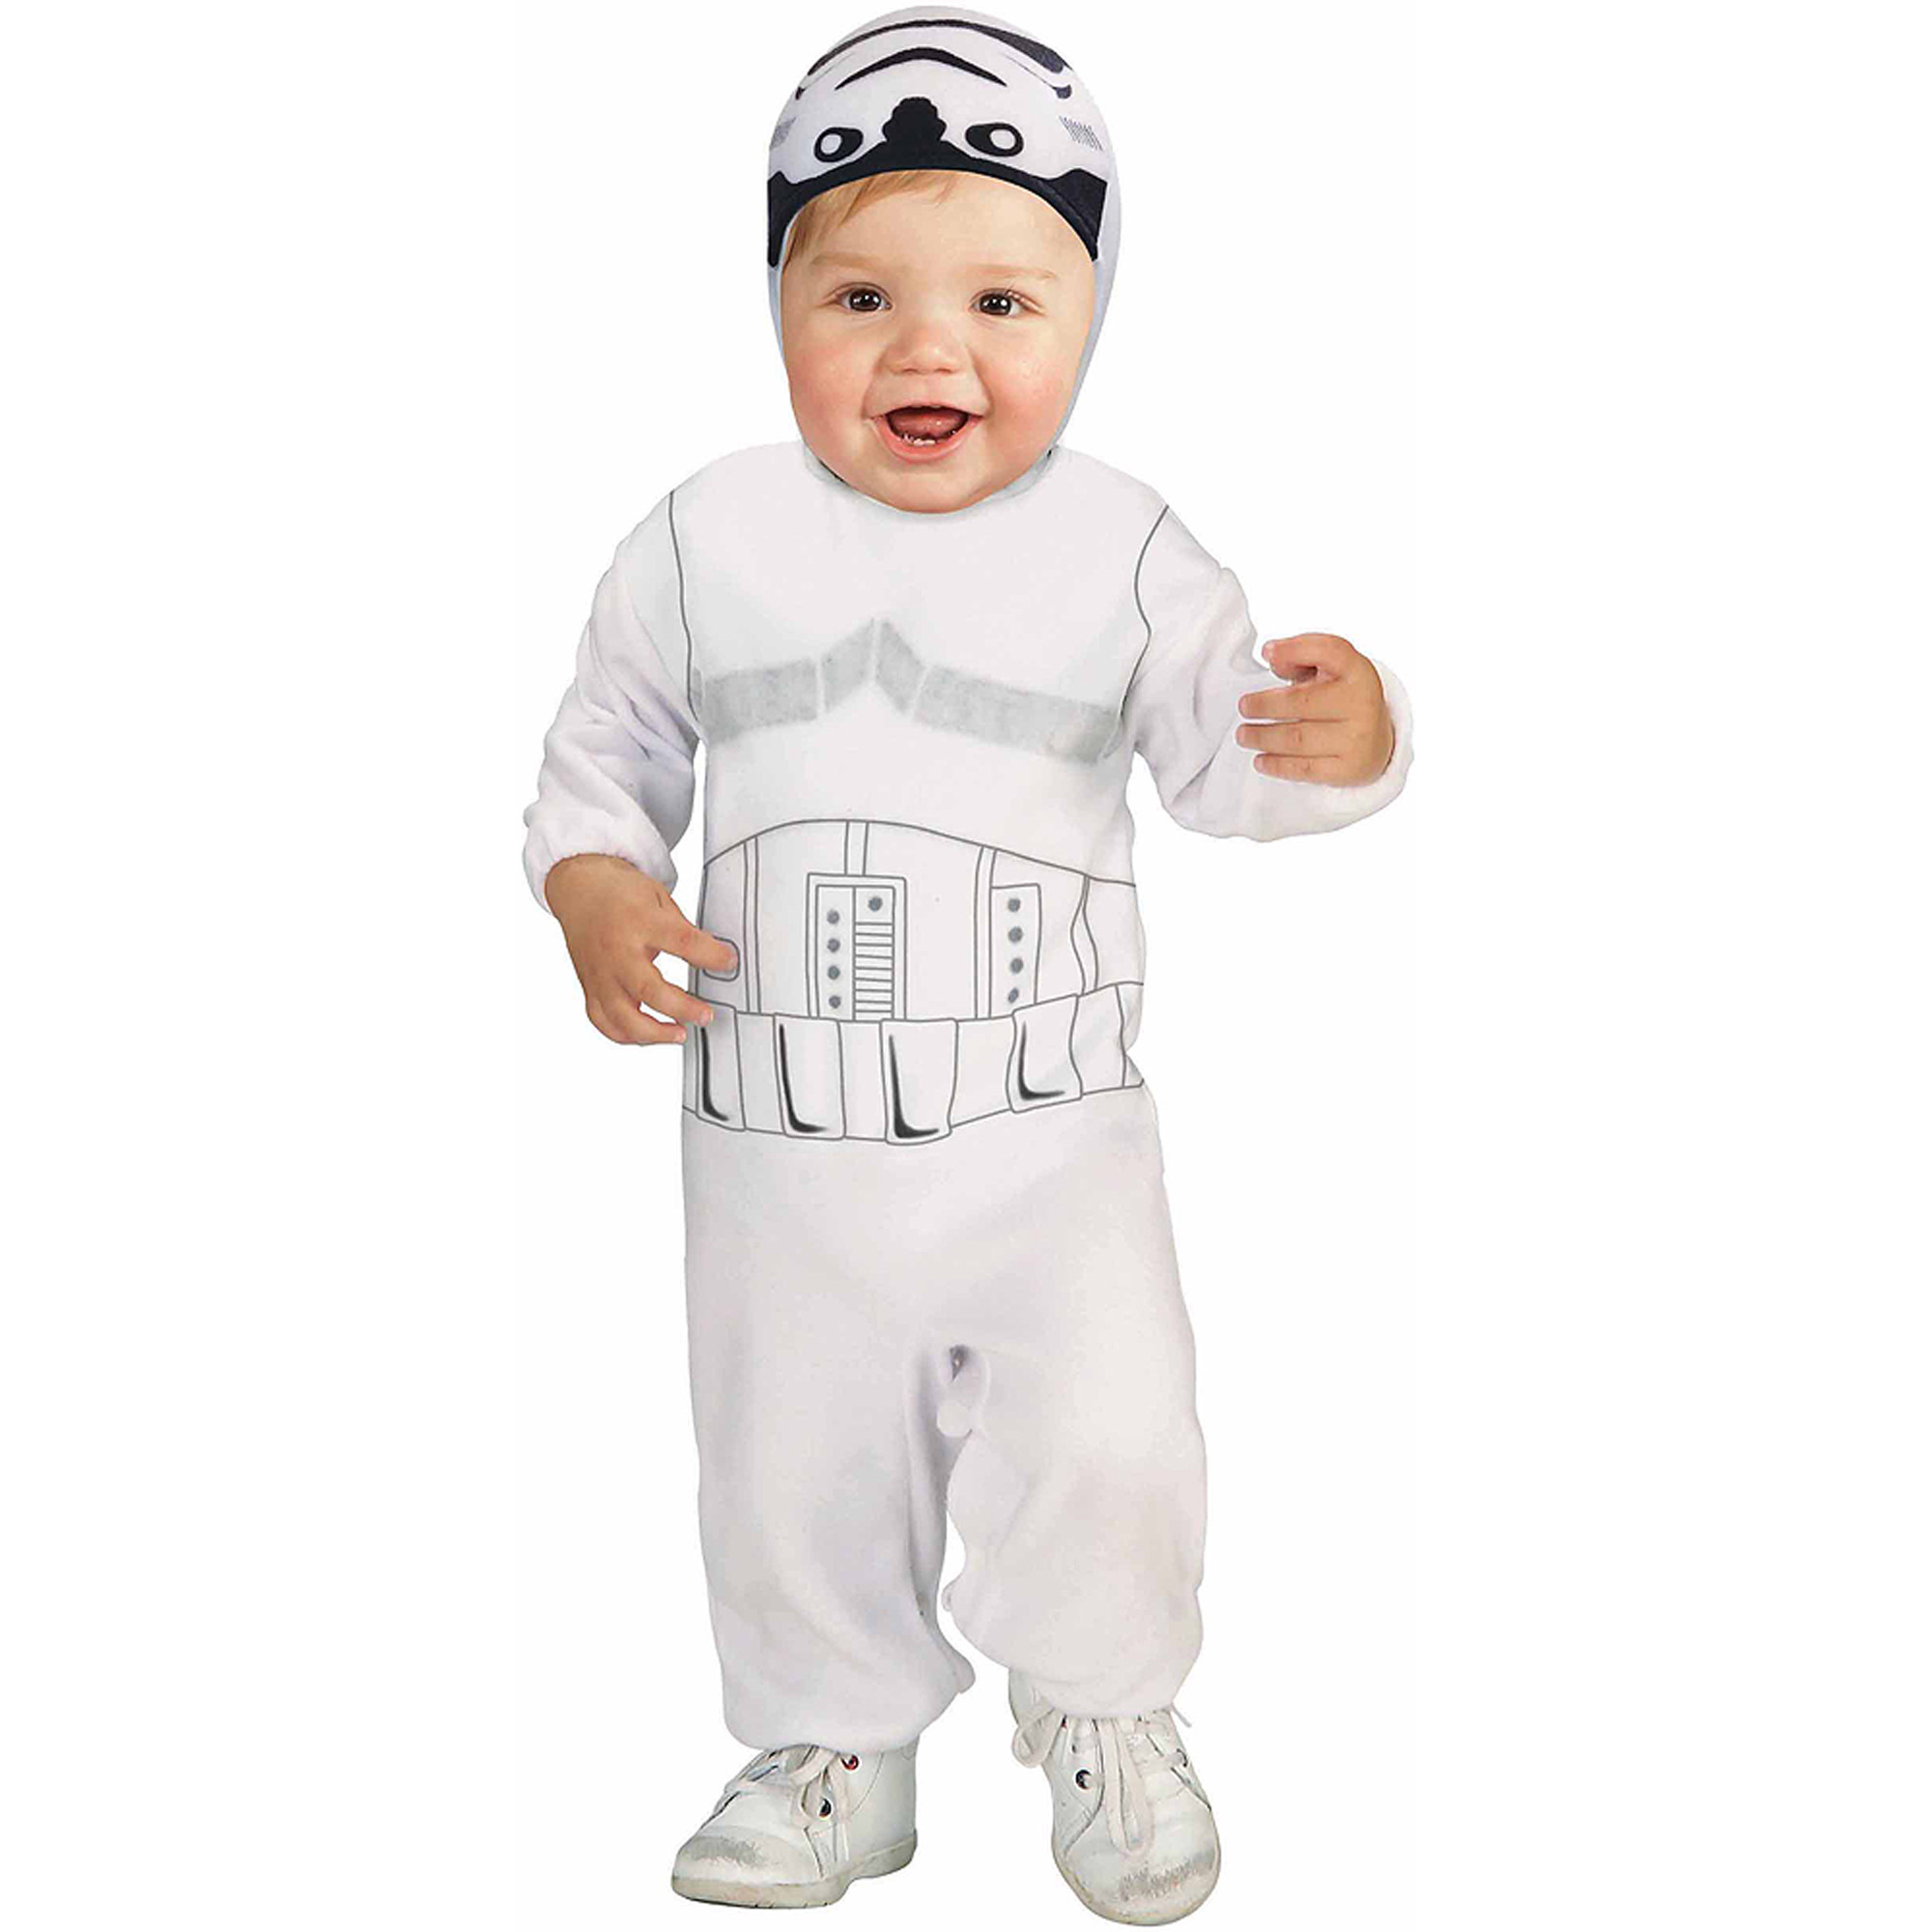 Star Wars Storm Trooper Toddler Halloween Dress Up / Role Play Costume - Walmart.com  sc 1 st  Walmart & Star Wars Storm Trooper Toddler Halloween Dress Up / Role Play ...